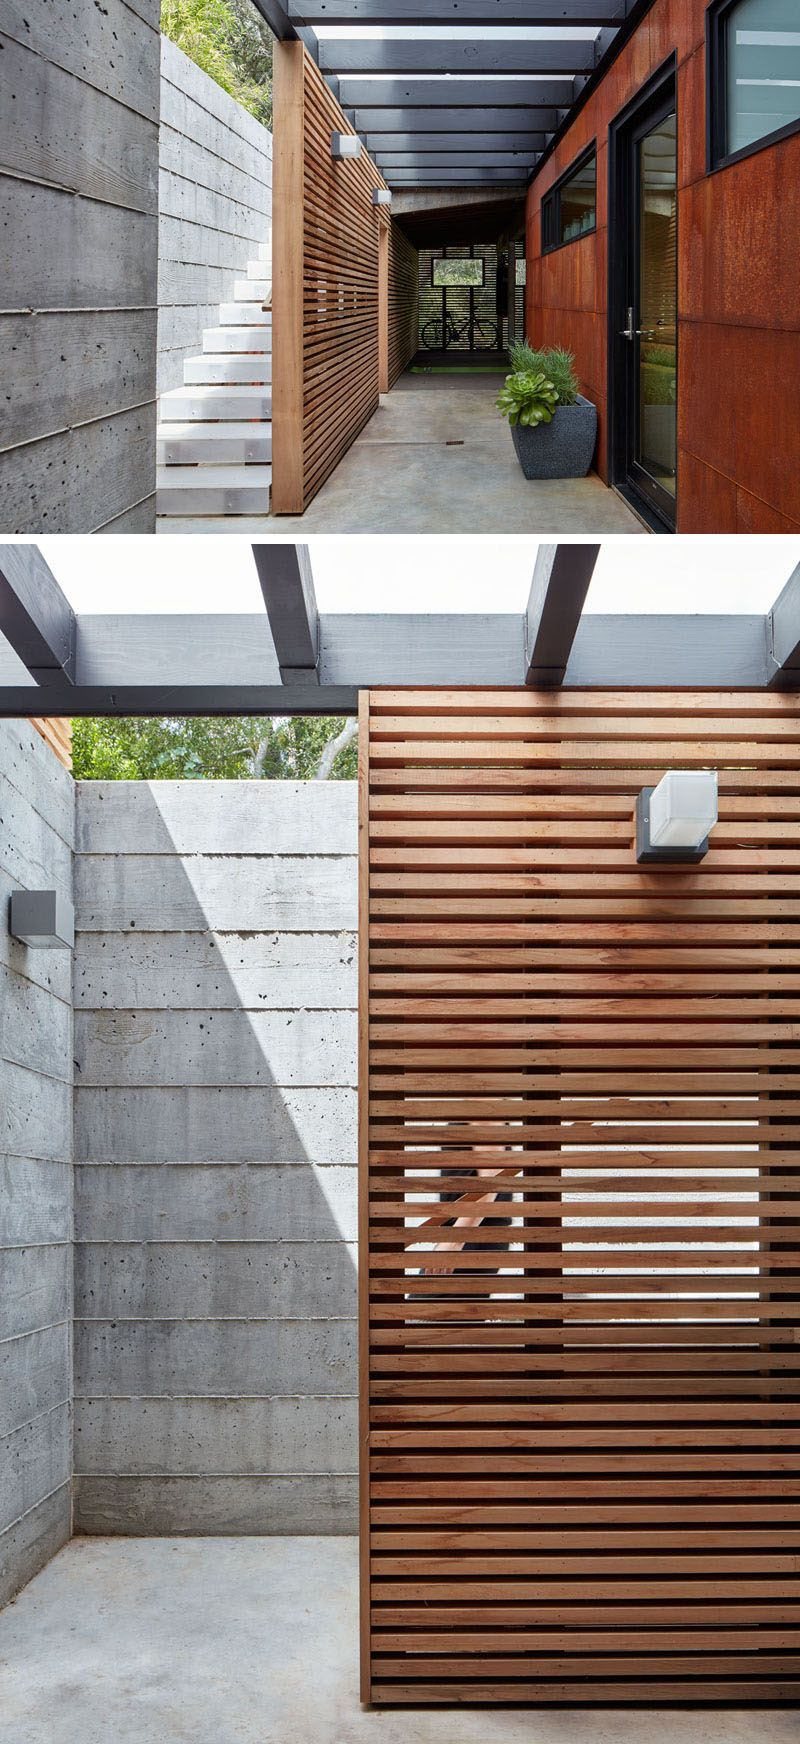 These Concrete Exterior Stairs Have a Wooden Privacy Screen